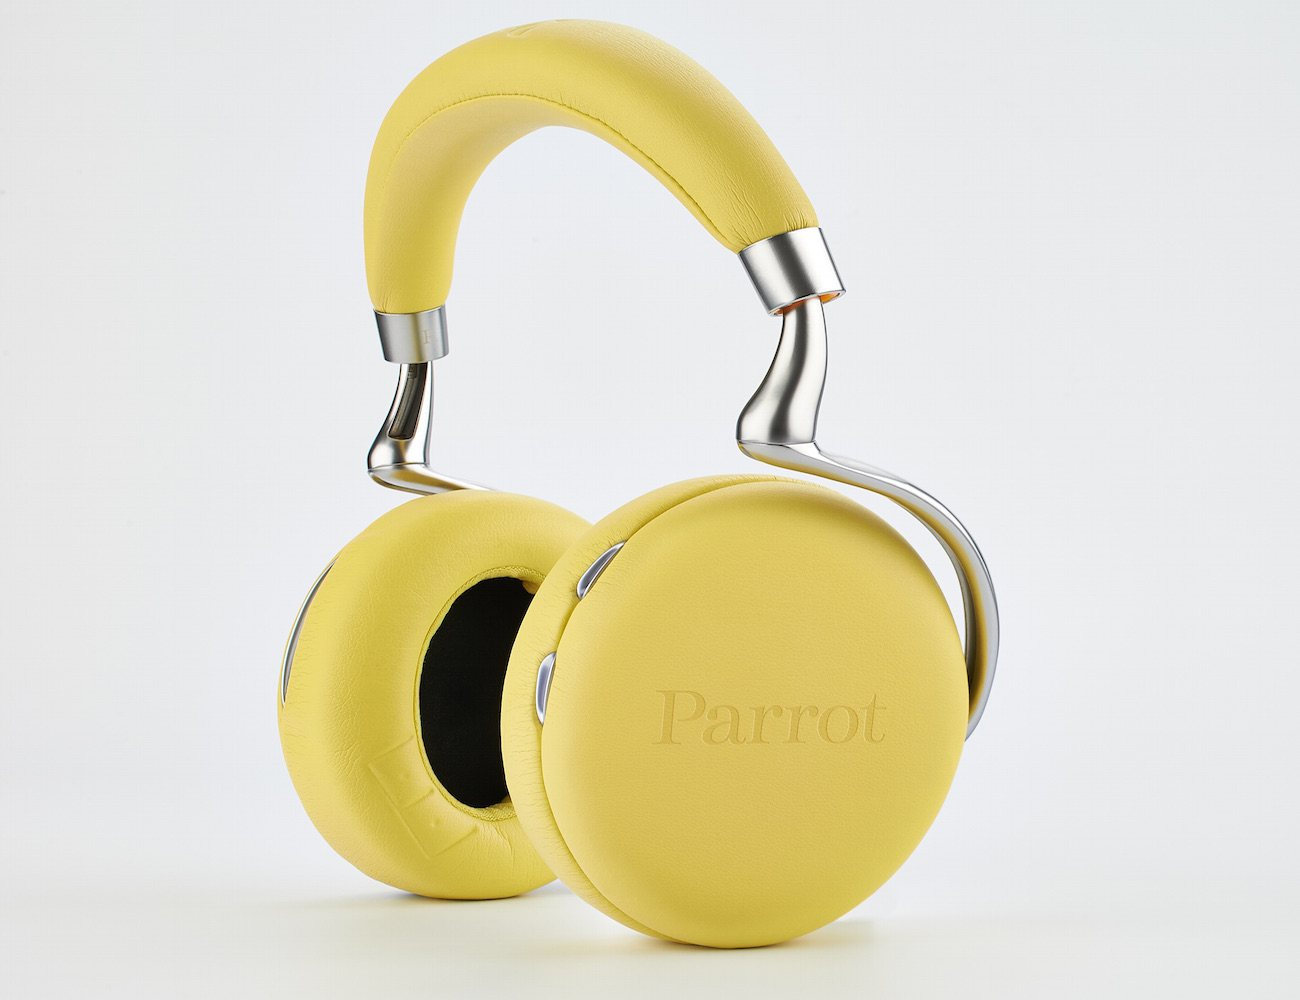 Parrot Zik 2.0 – The World's Most Advanced Headphones